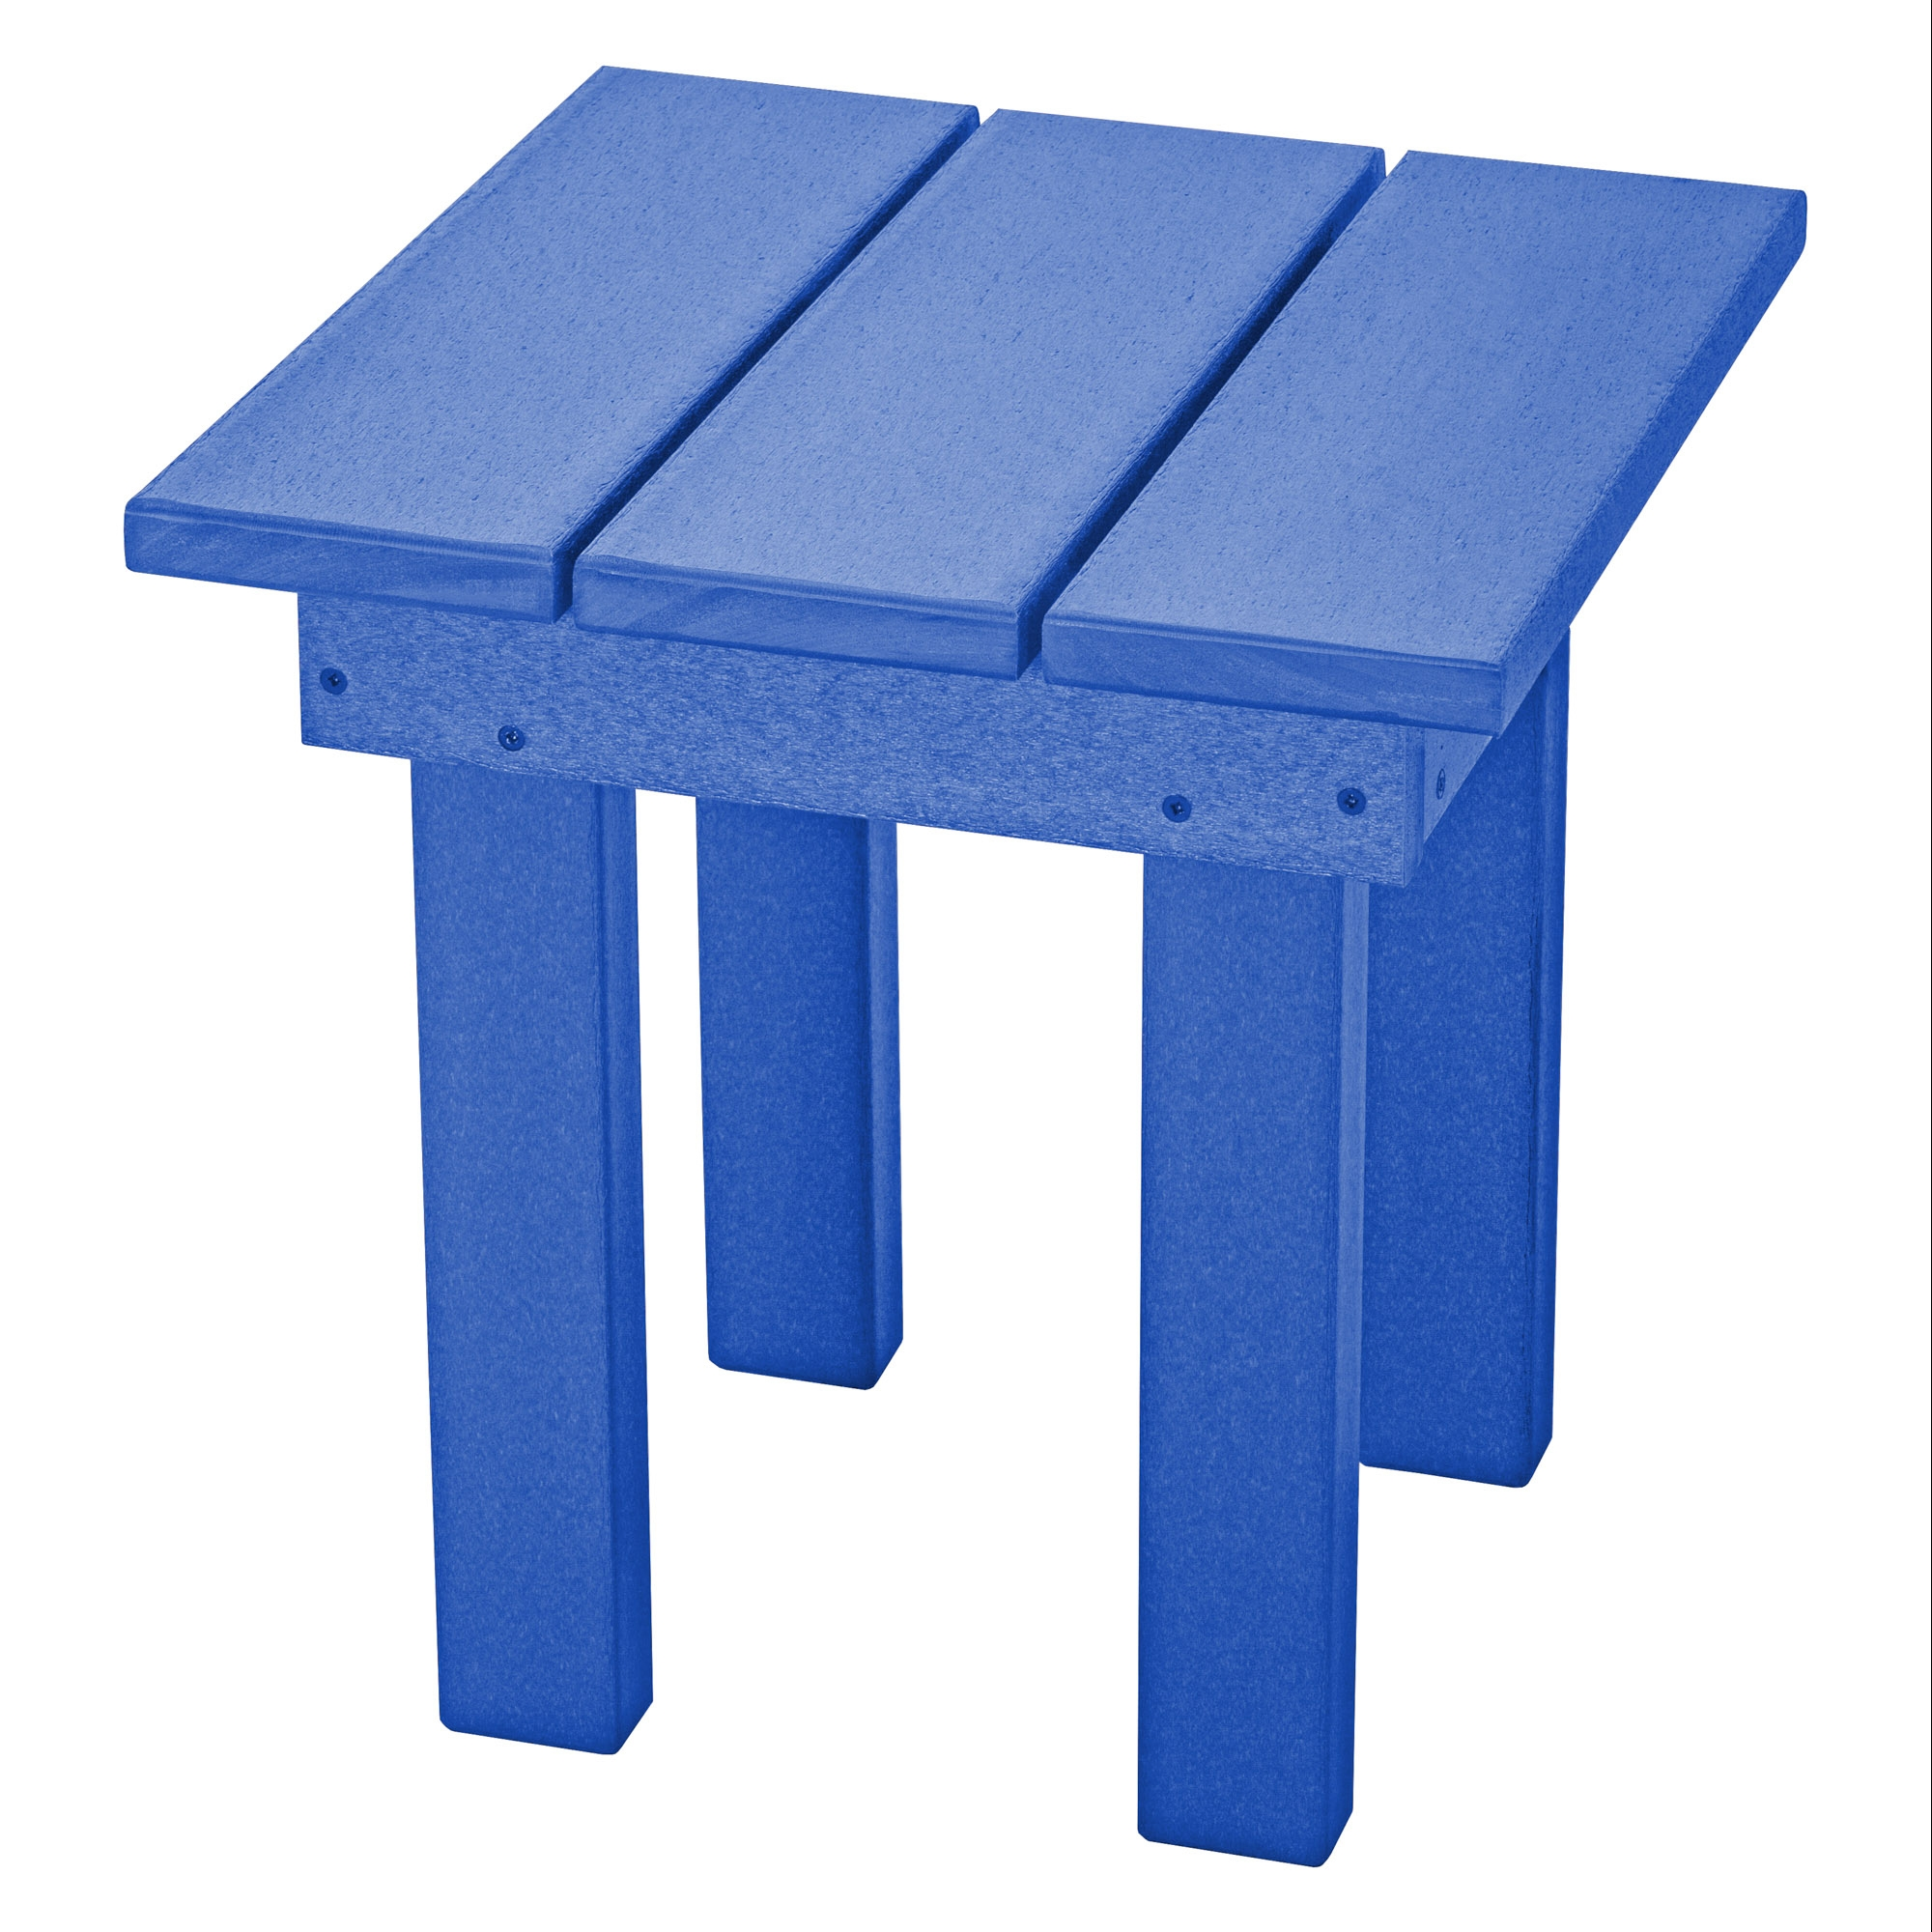 durawood square adirondack side table pawleys island hammocks small blue outdoor beverage cooler ikea kids storage boxes bar height kitchen lawn chair cushions antique round wood